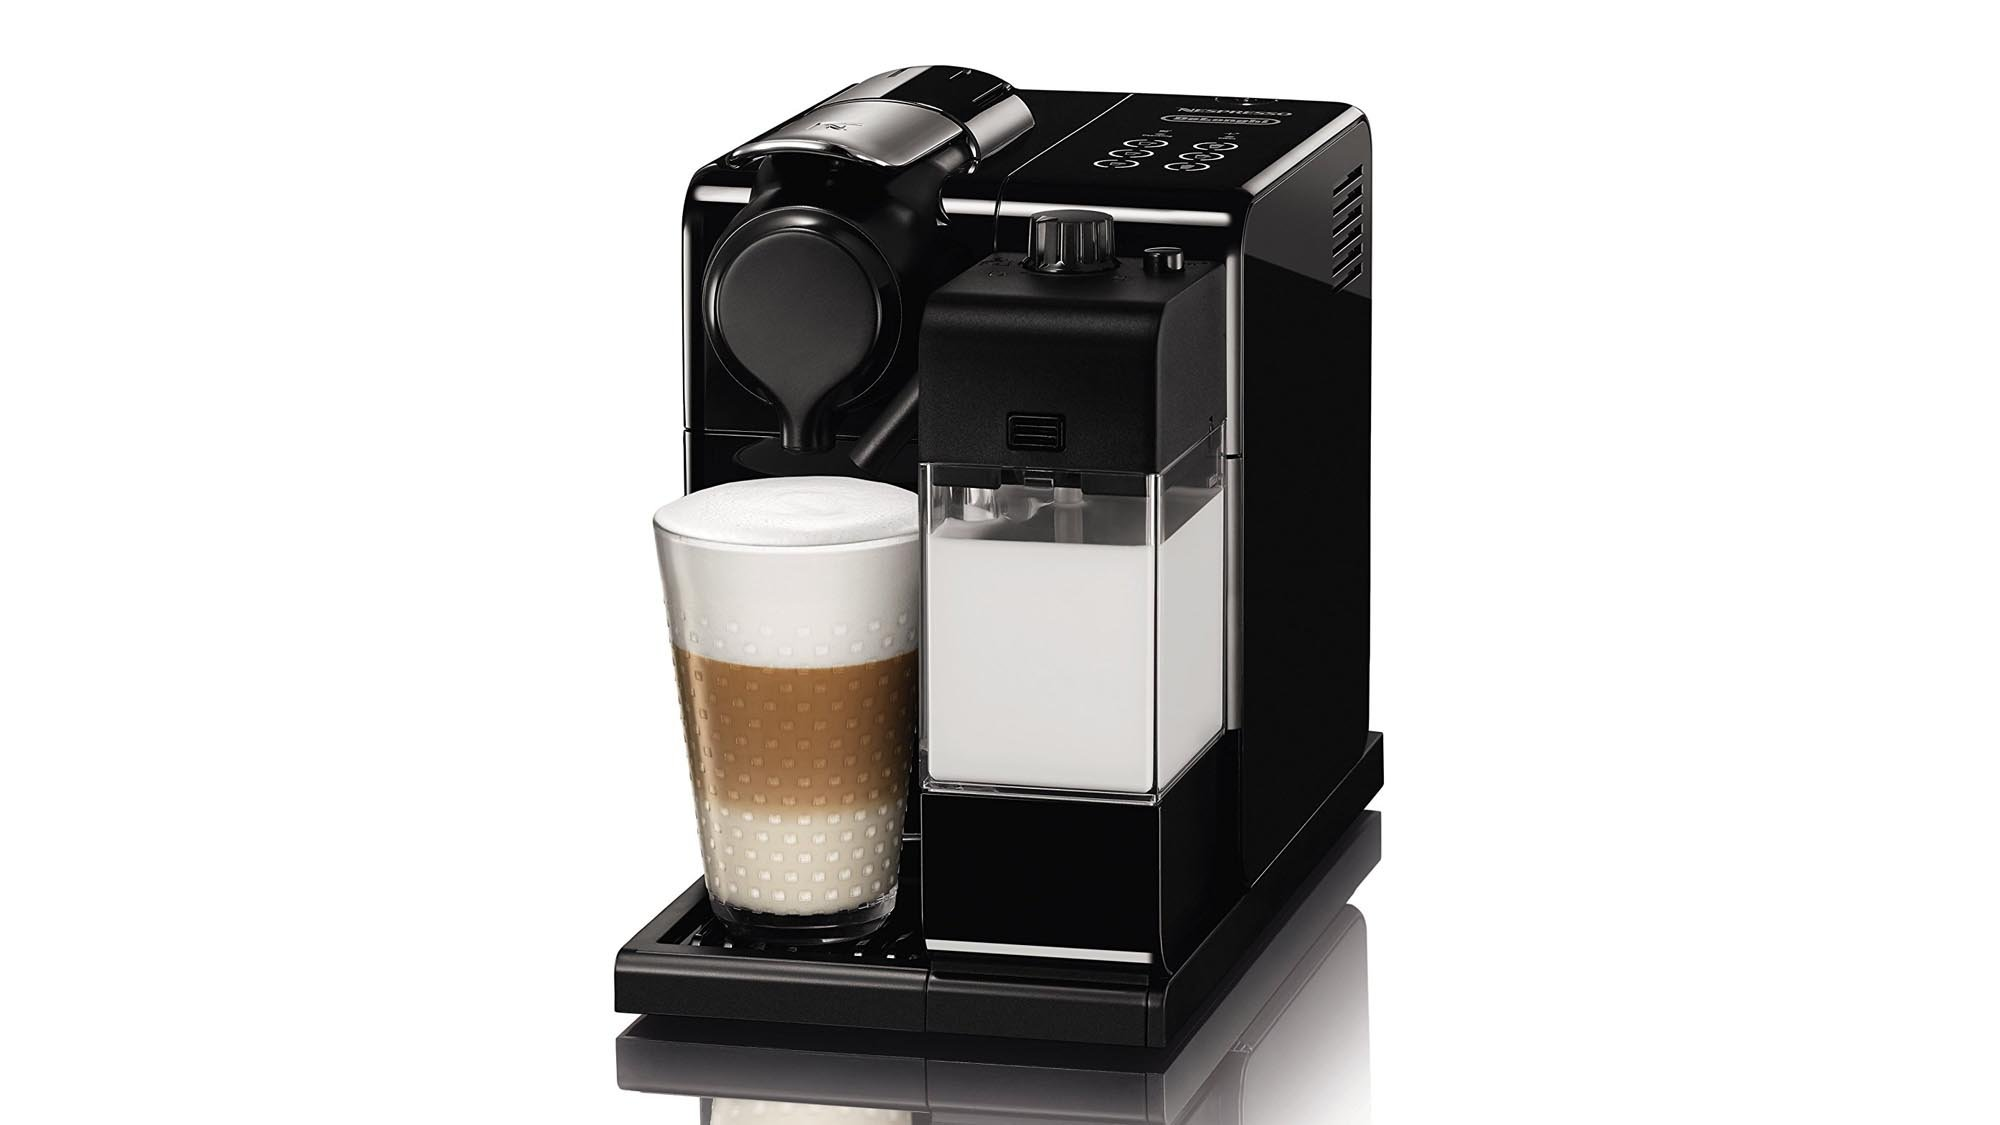 c1c23403259 Best coffee machine 2019  How to pick the right coffee machine for ...